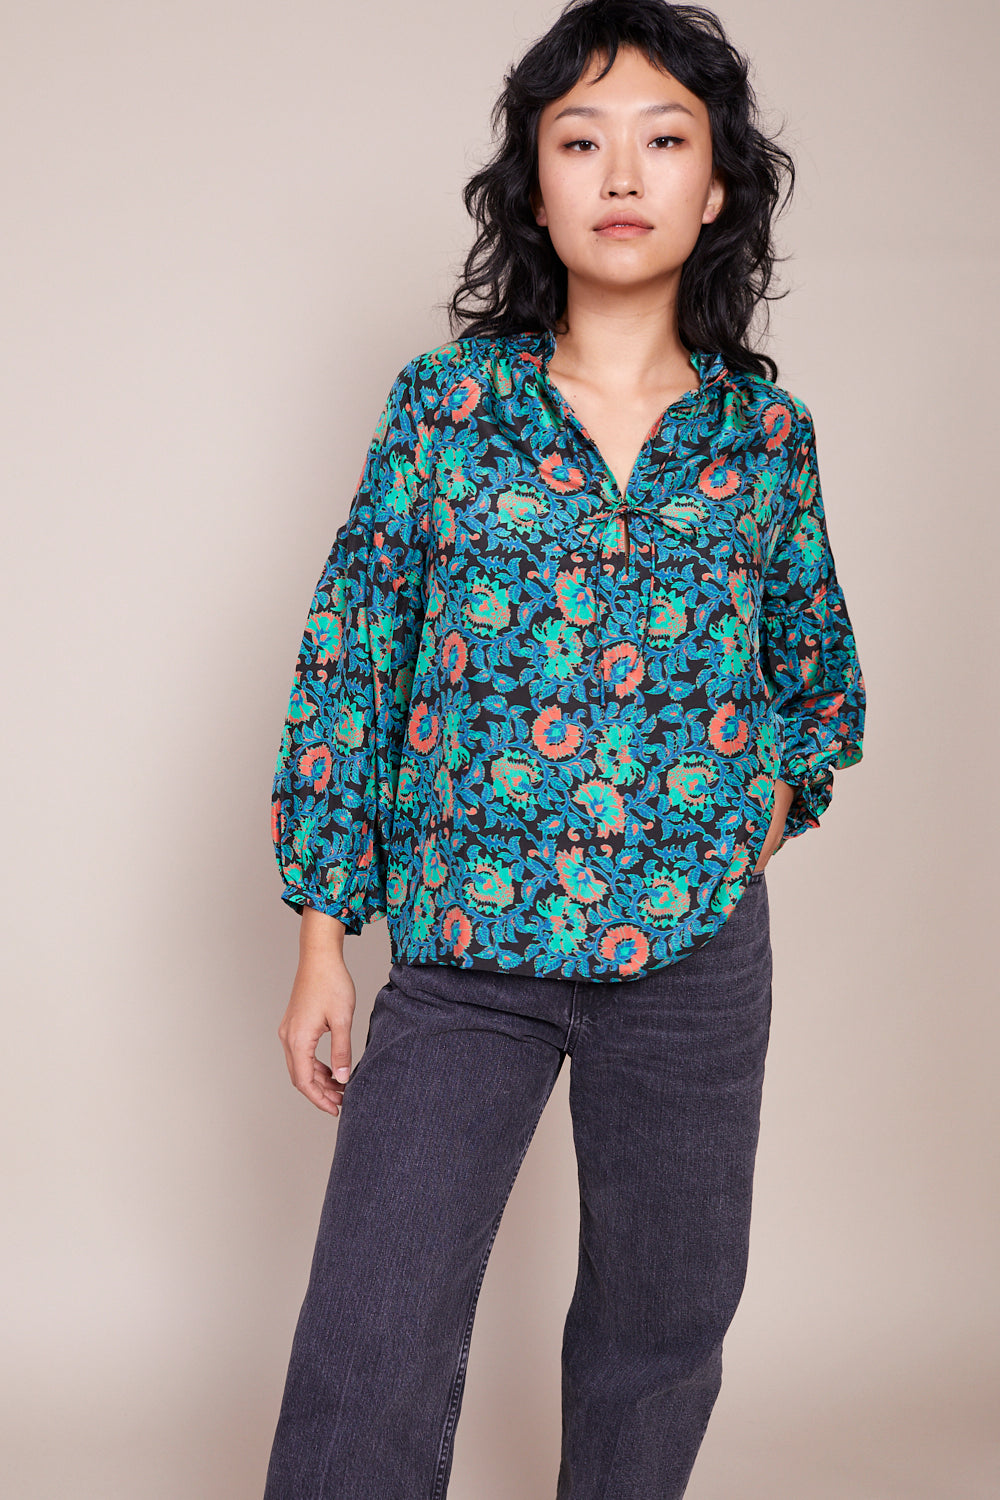 Betina Blouse in Avingnon Floral